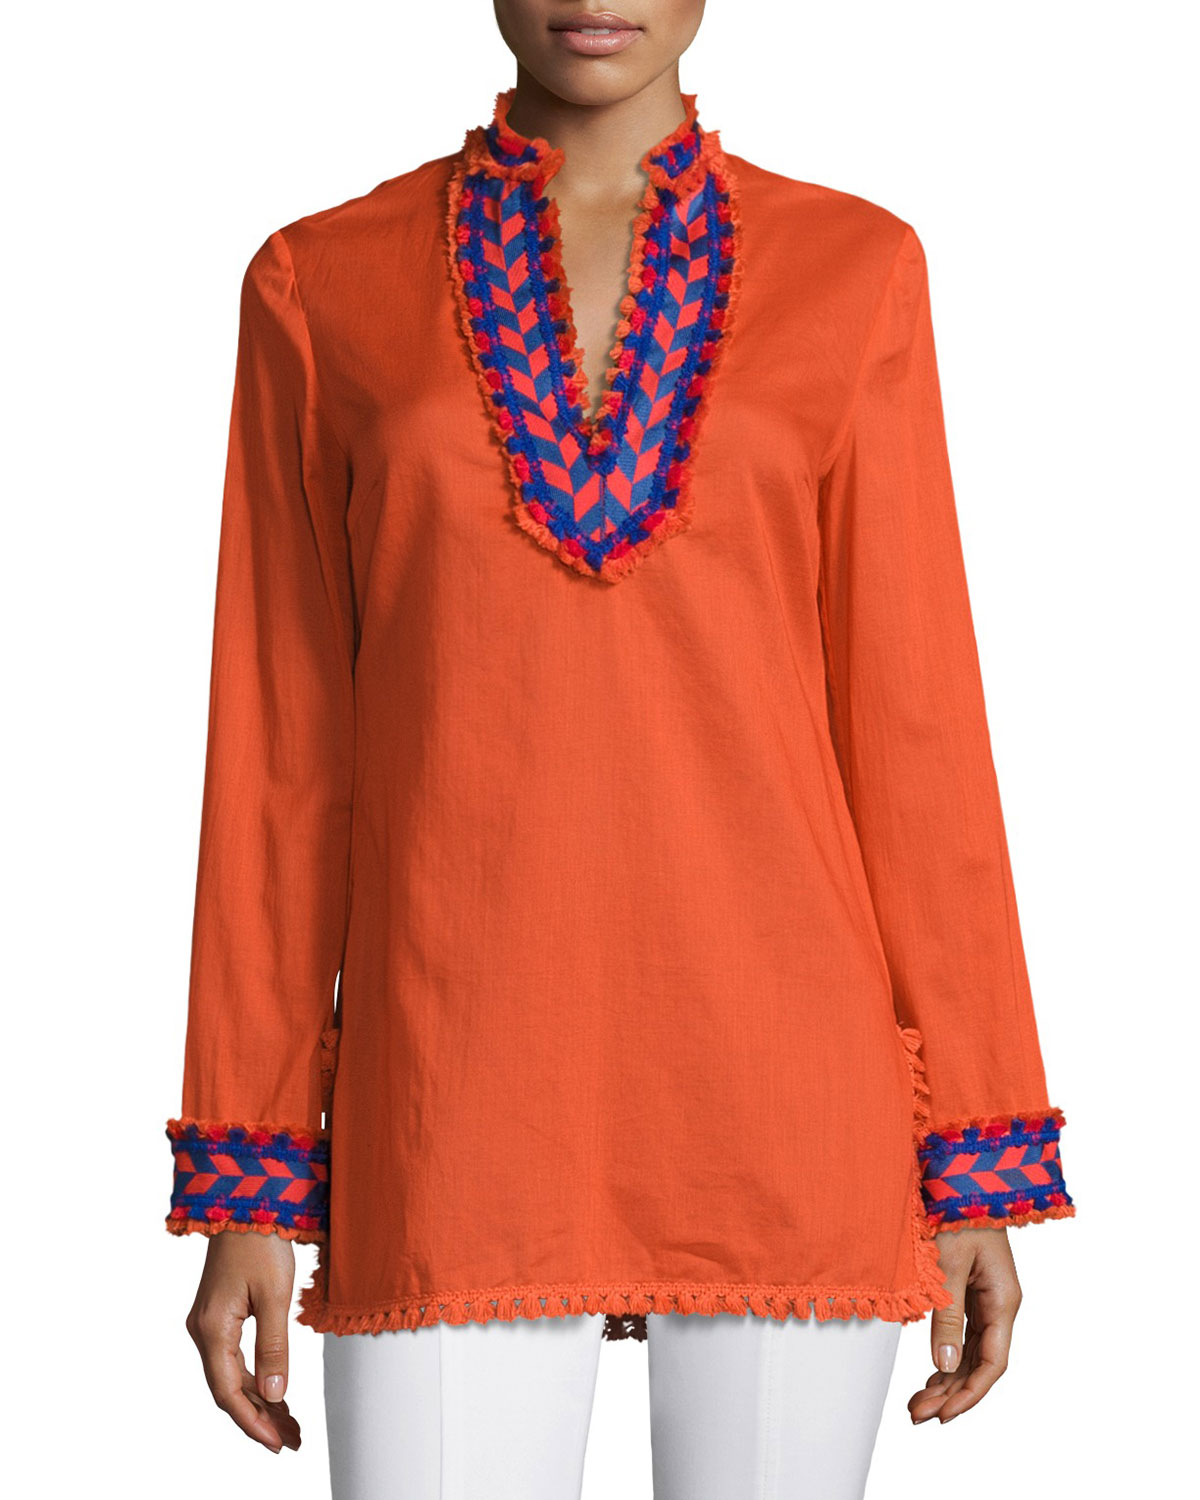 9513819d64a4 Tory Burch Samba Fringe-Trim Cotton Tunic Top